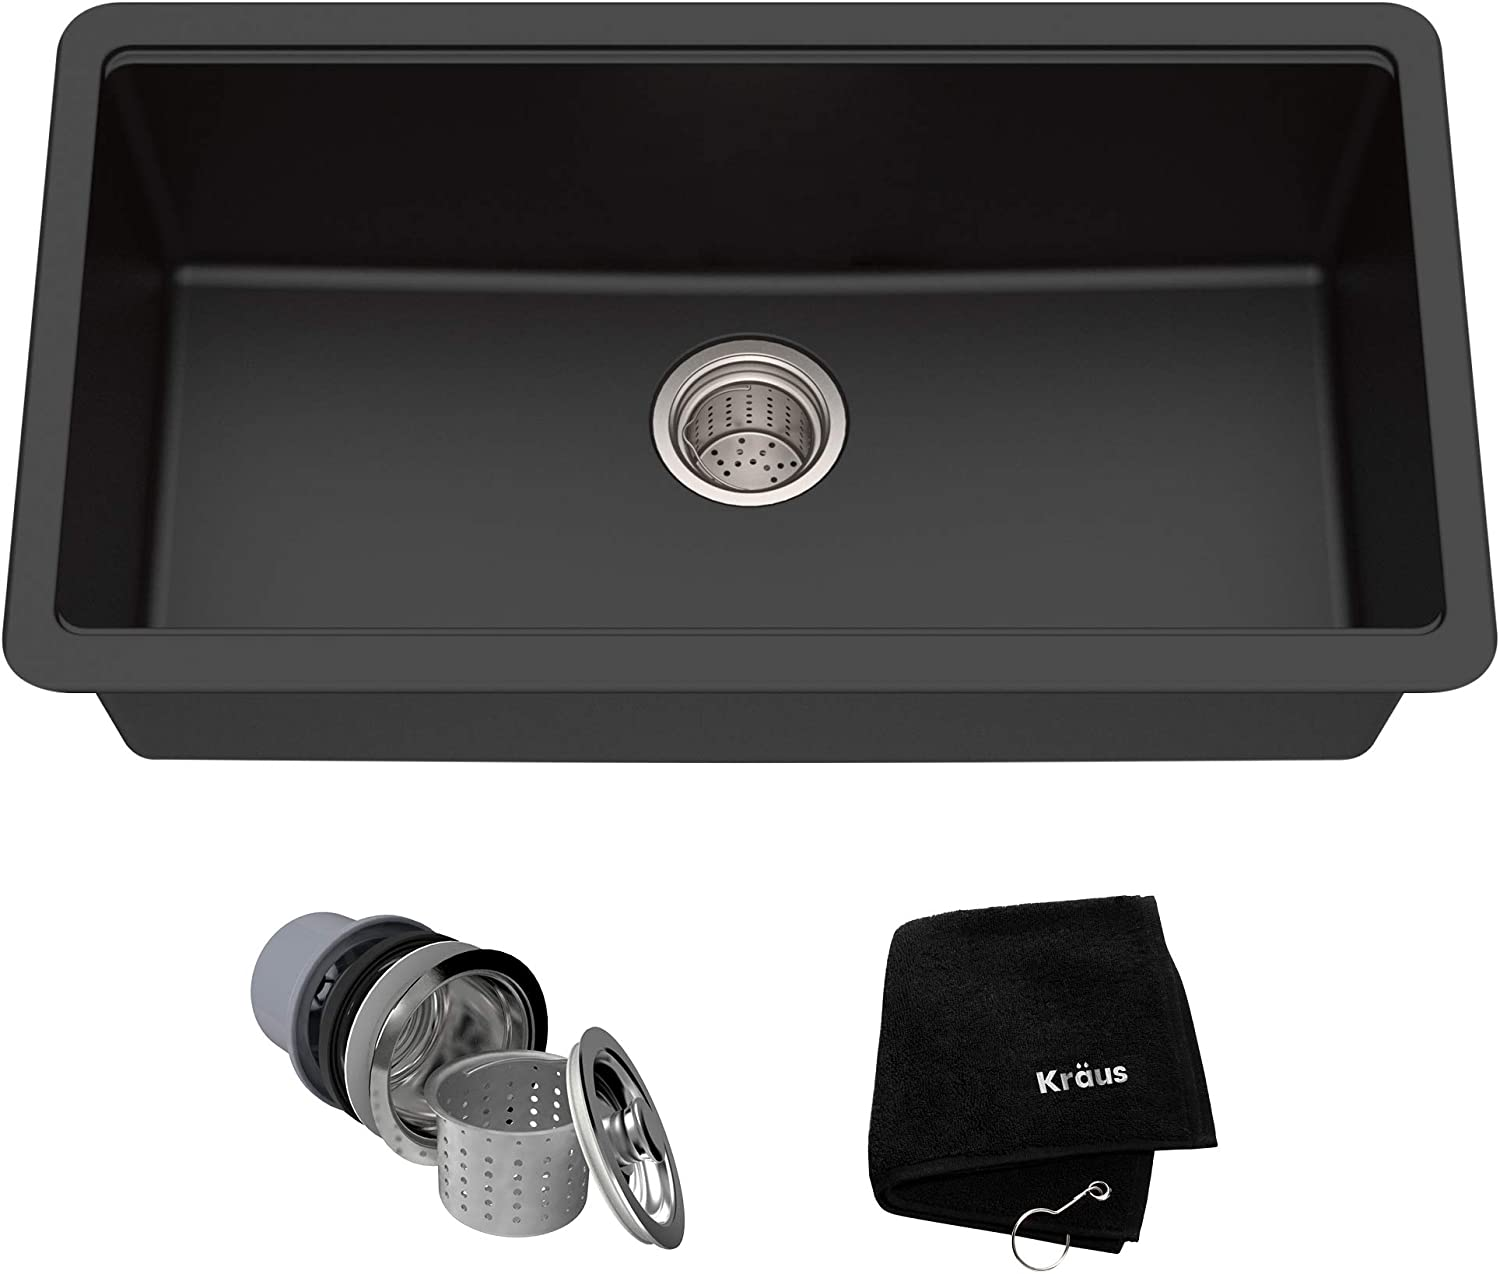 best granite sink: Kraus KGU-413B 31-inch Undermount sink